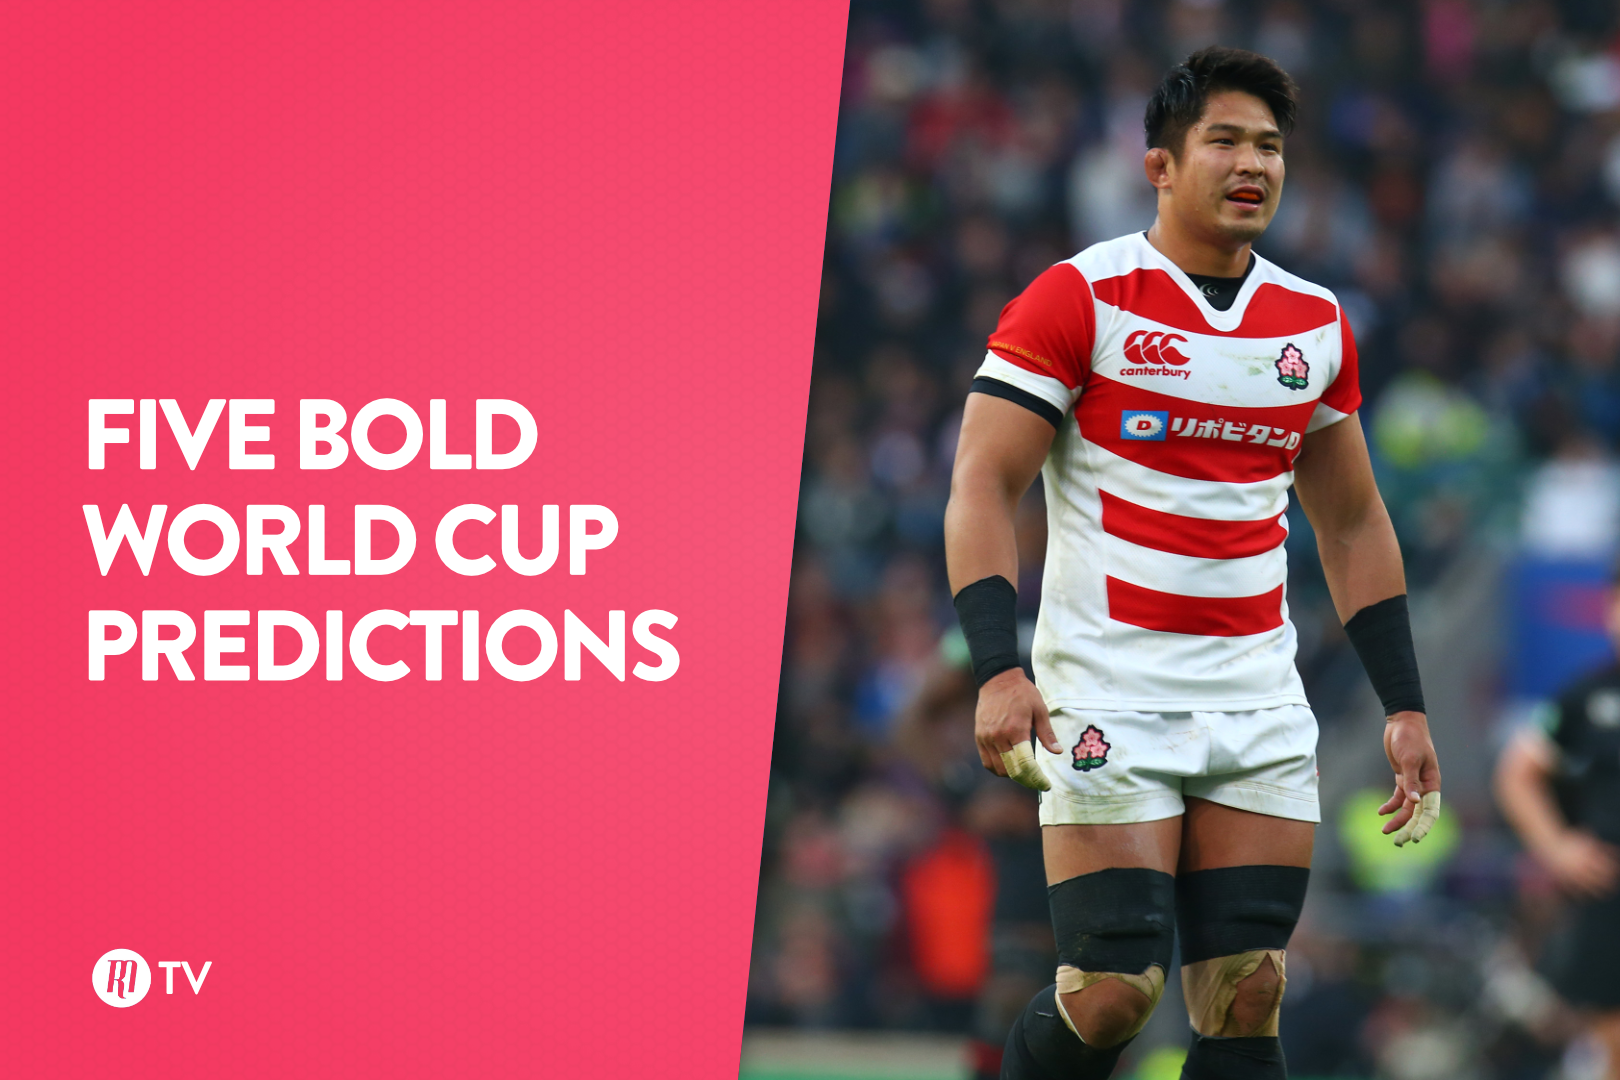 Five Bold Rugby World Cup Predictions